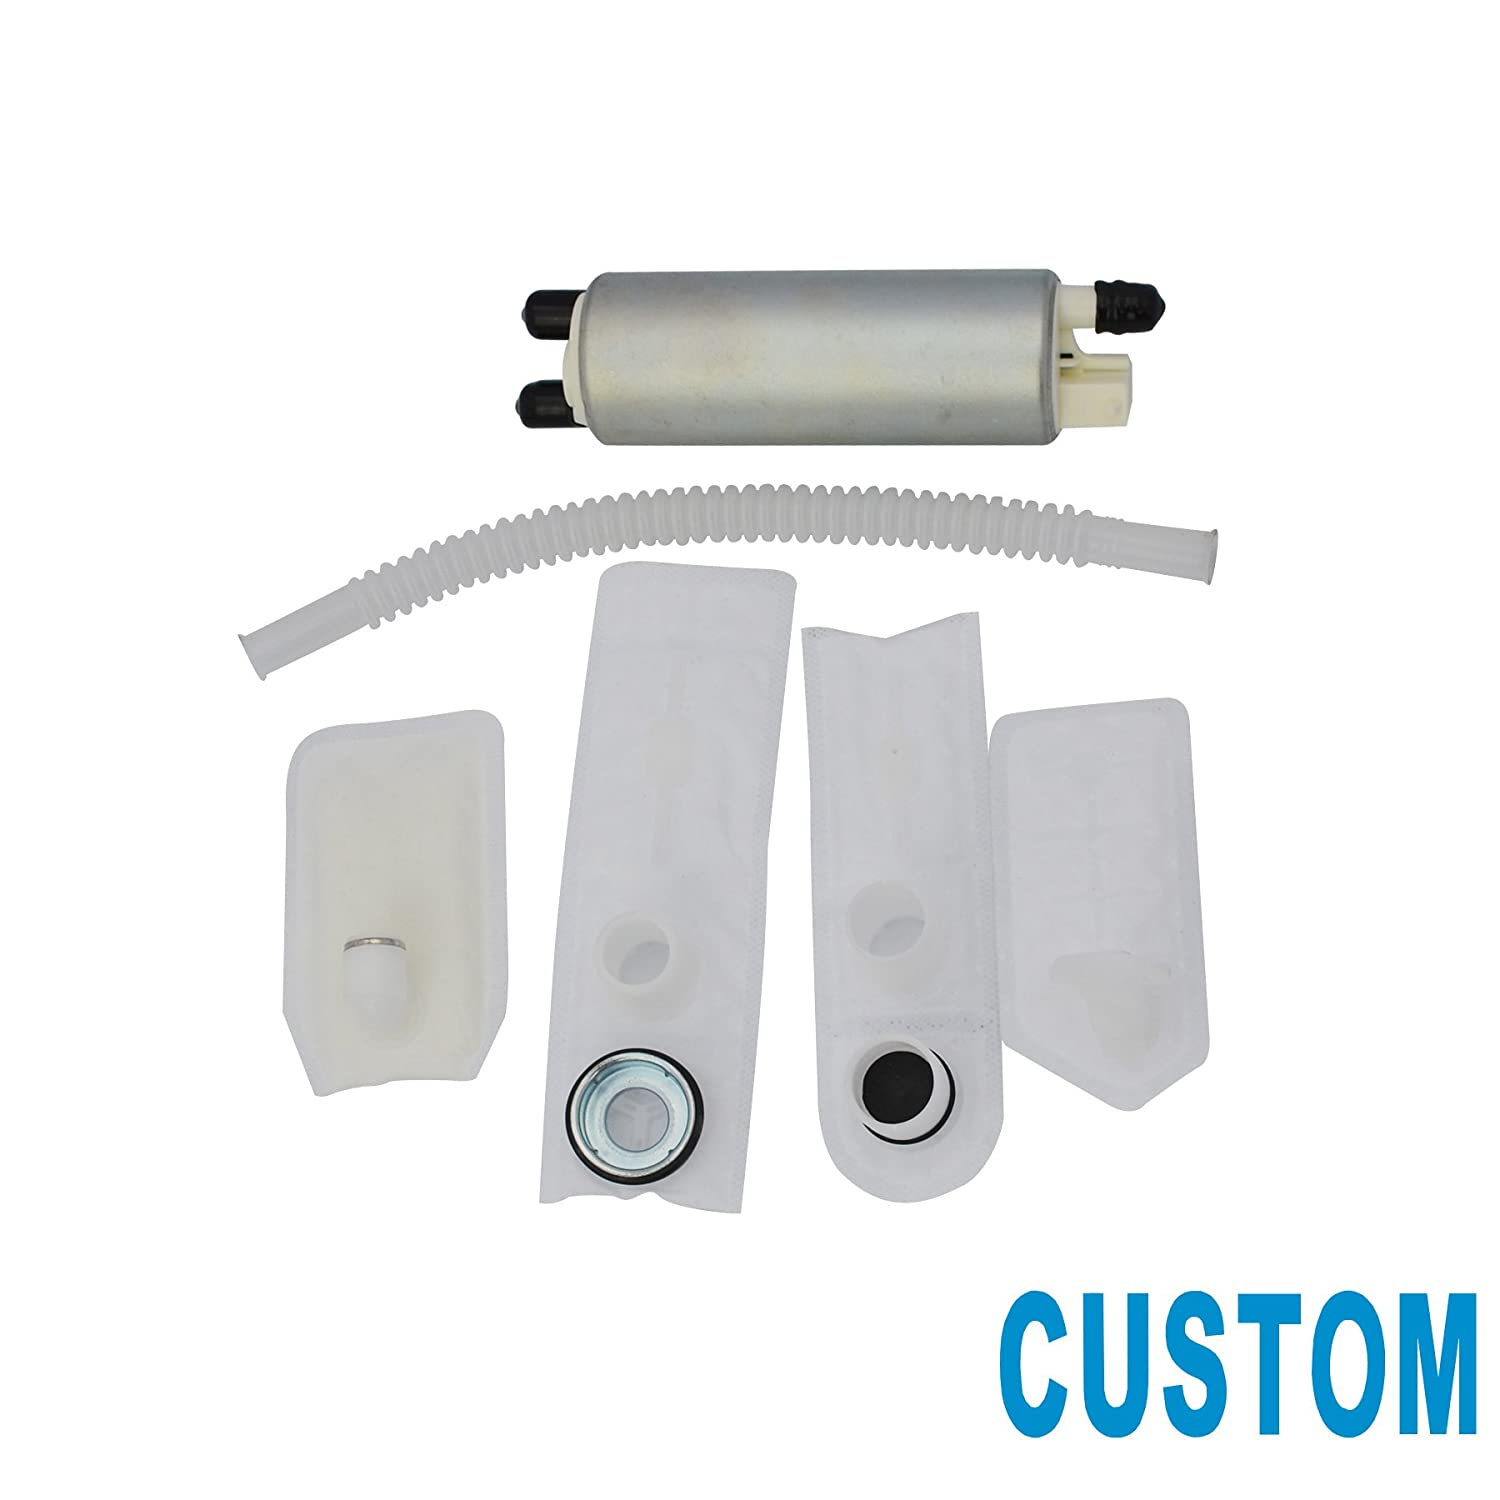 Custom 1pc New Electric Intank Fuel Pump With Cadillac Deville Filter Location Installation Kit For Buick Pontiac Chevrolet Gmc Oldsmobile Hffs380 Automotive